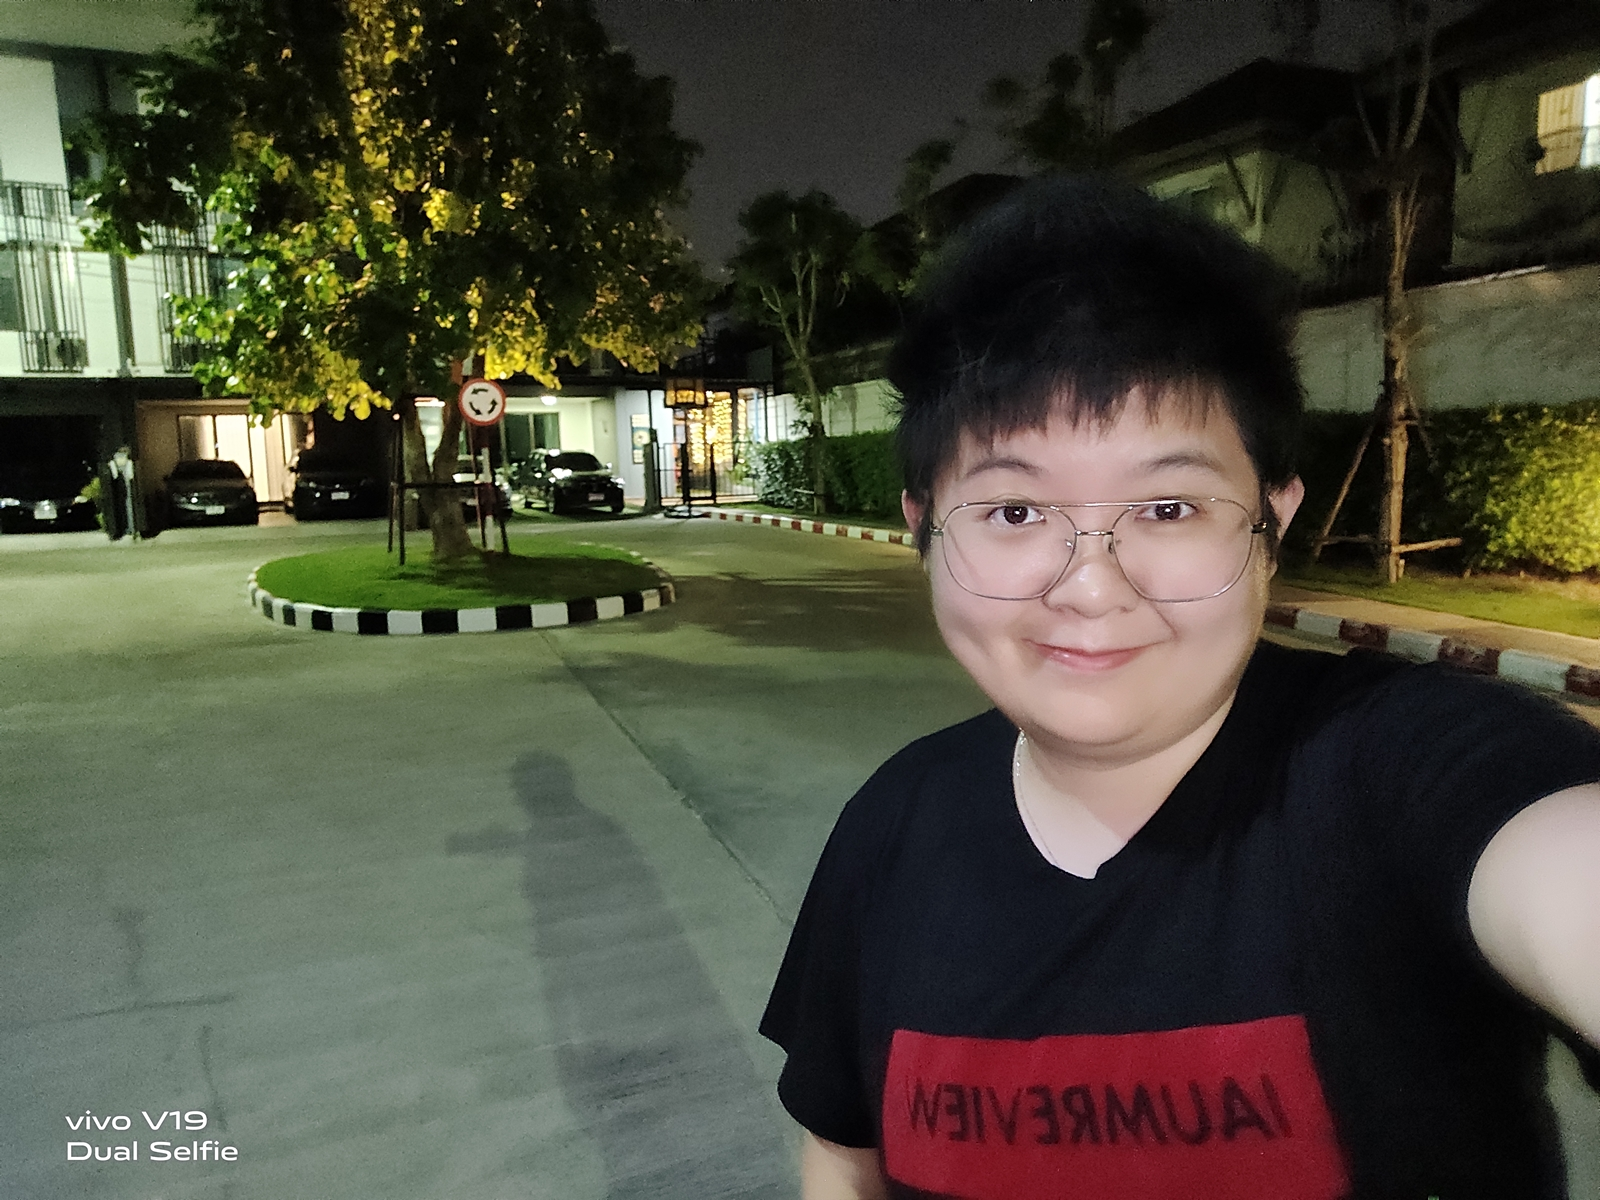 Shot on Vivo V19 - ai super night selfie